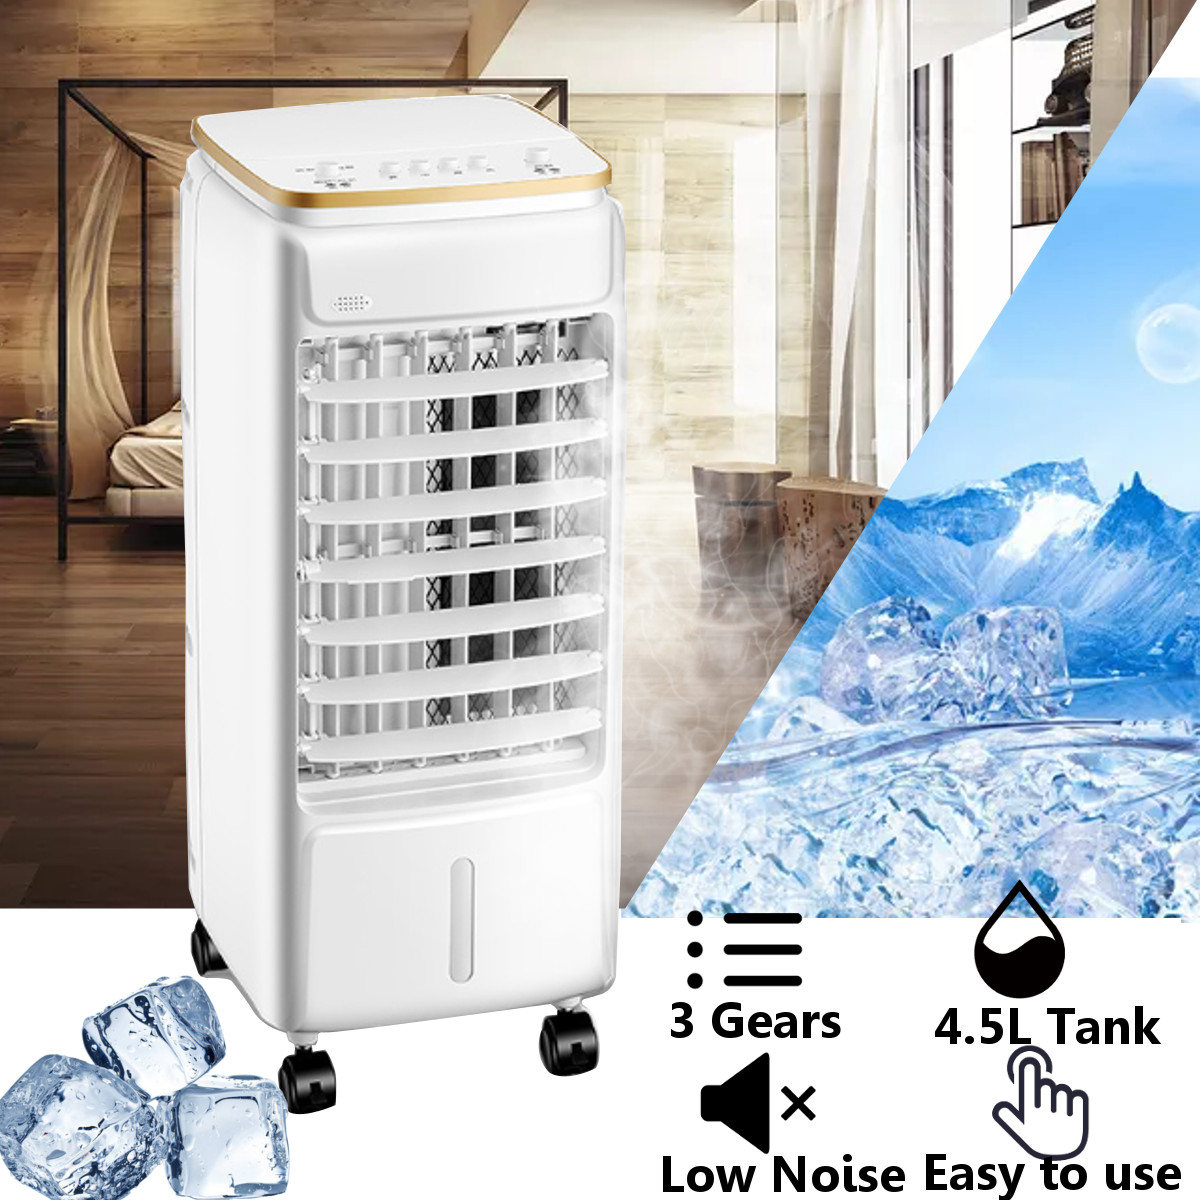 220V Portable Air Conditioner Conditioning Fan Humidifier Cooler Cooling Air Conditioner Cooling Fan Humidifier